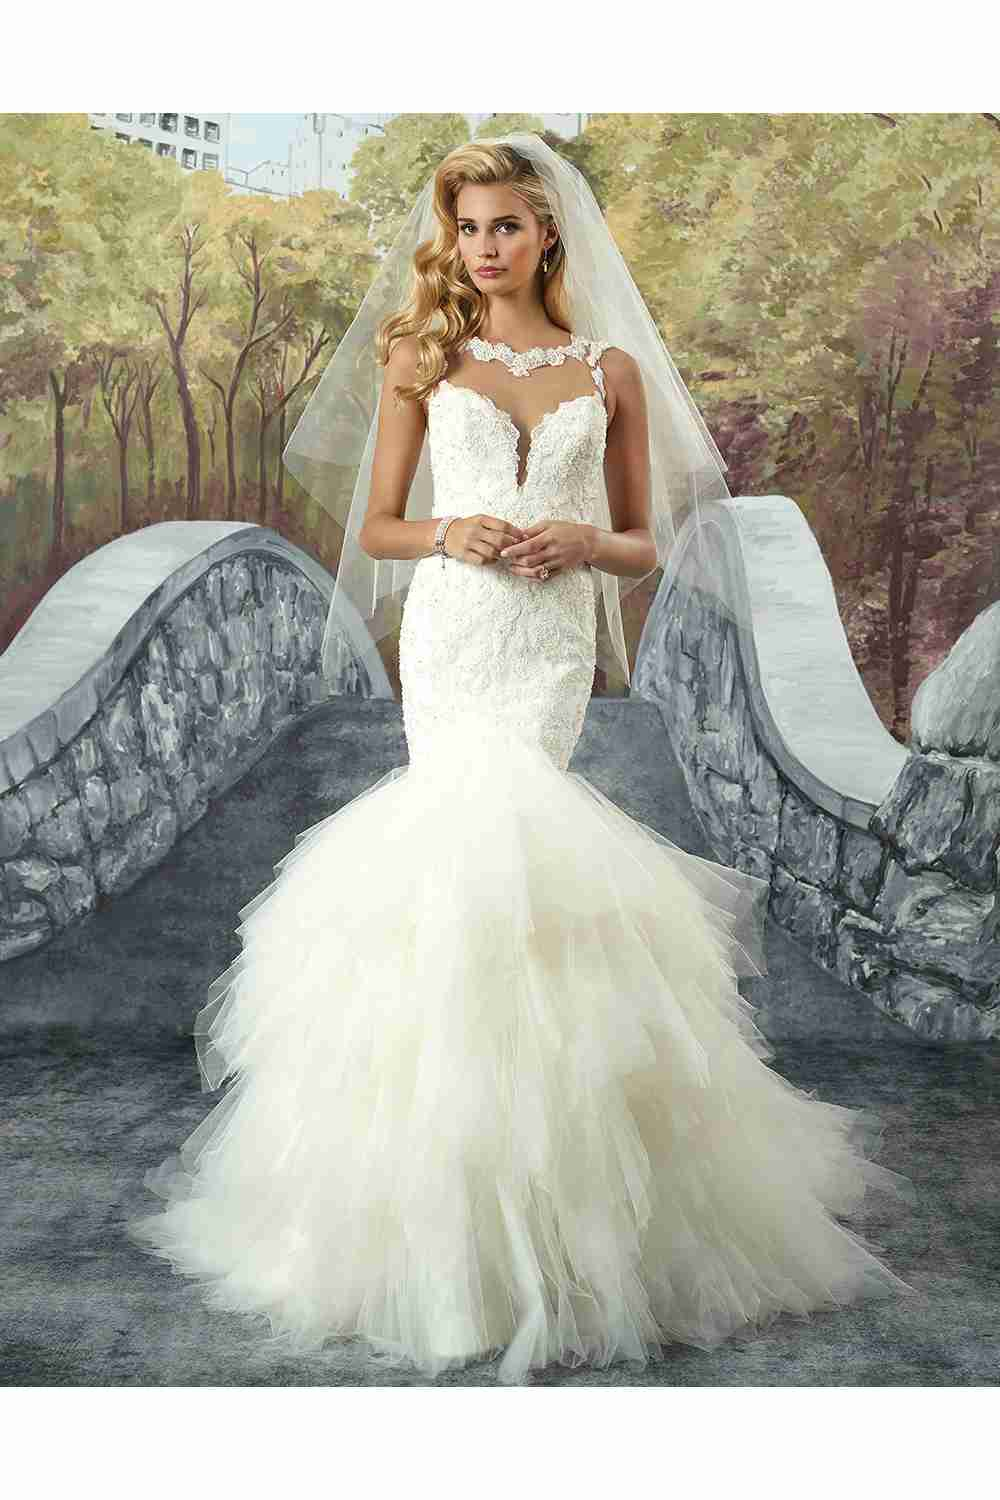 Need a bridal gown in 24 hours?